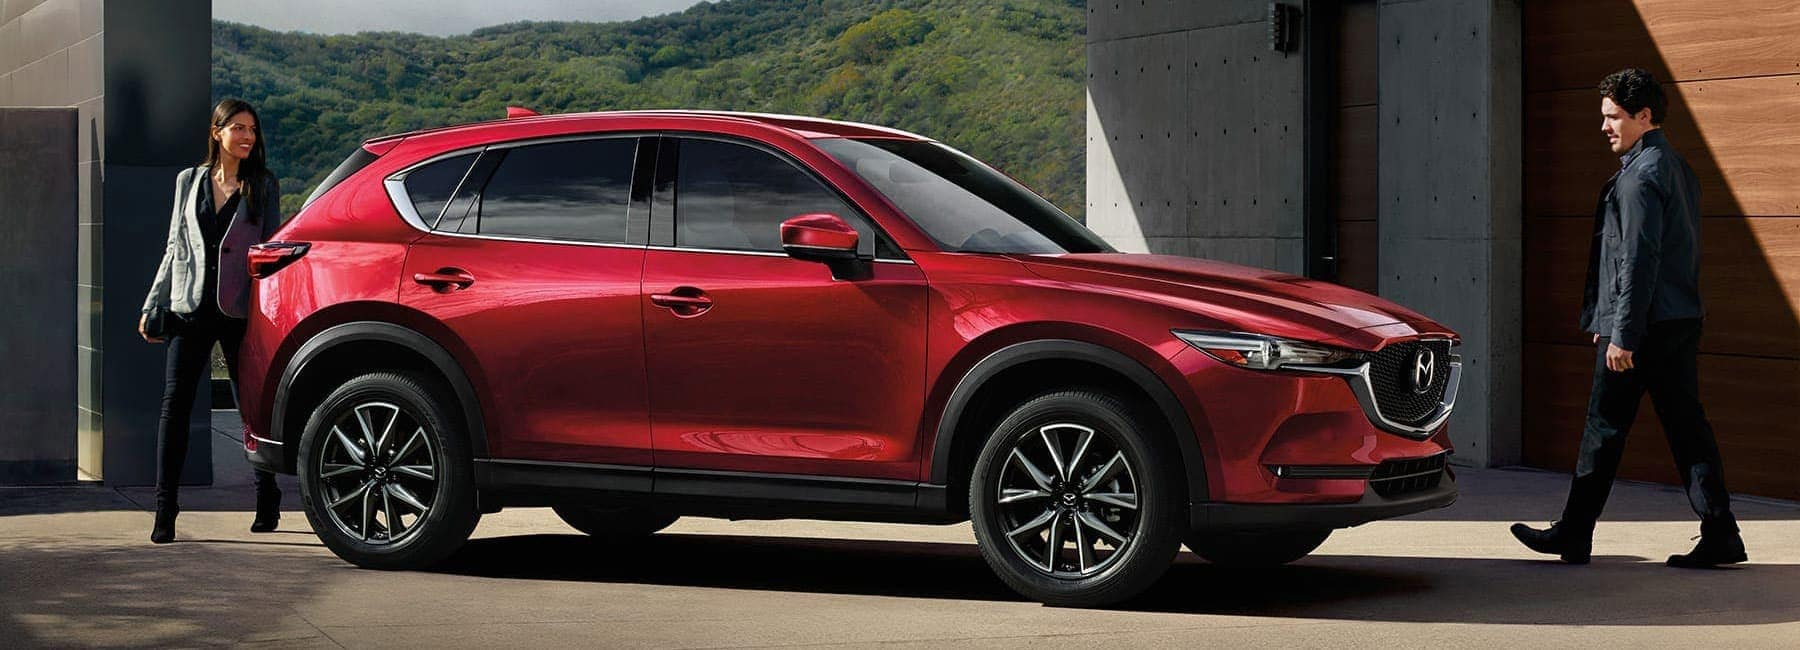 2017-cx5 new soul red Mazda car